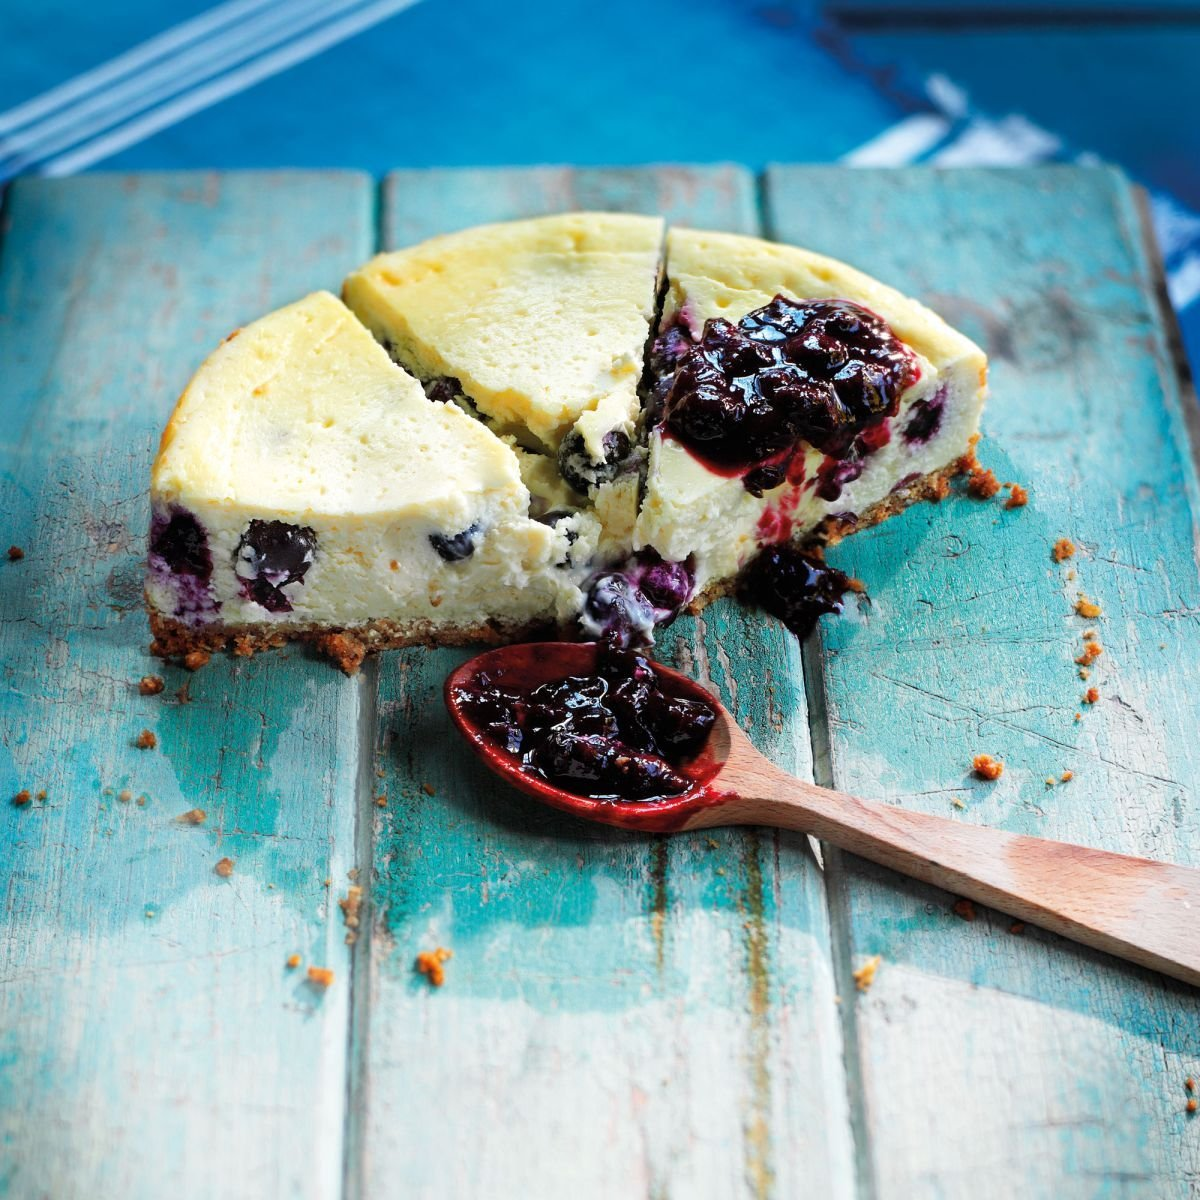 8 cheesecake recipes even baking amateurs can make